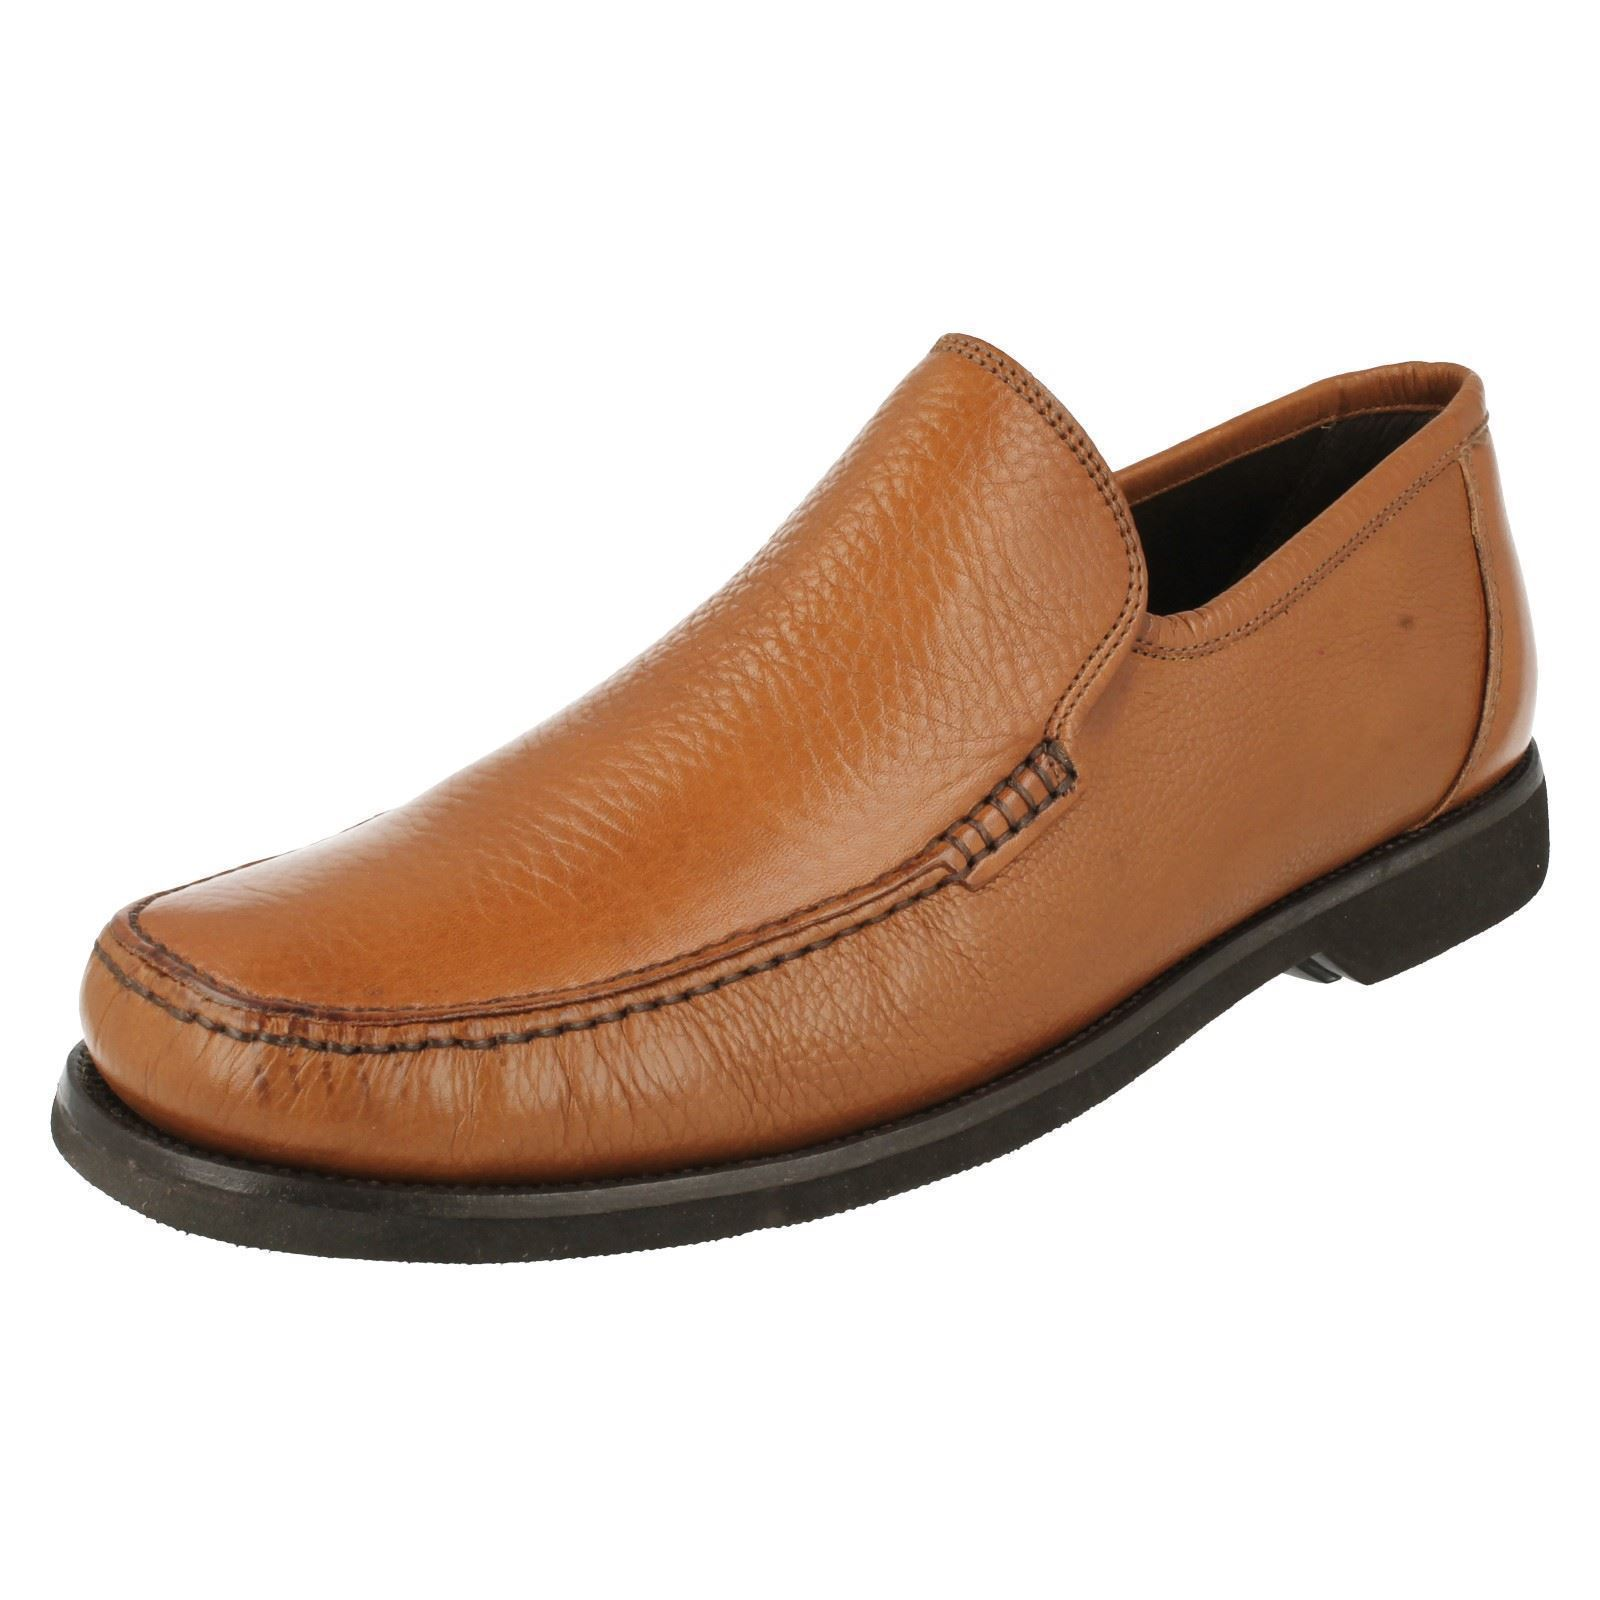 Men's Anatomic & Co Shoes Casual  Slip On Shoes Co The Style - Angra 979740 2f06d9